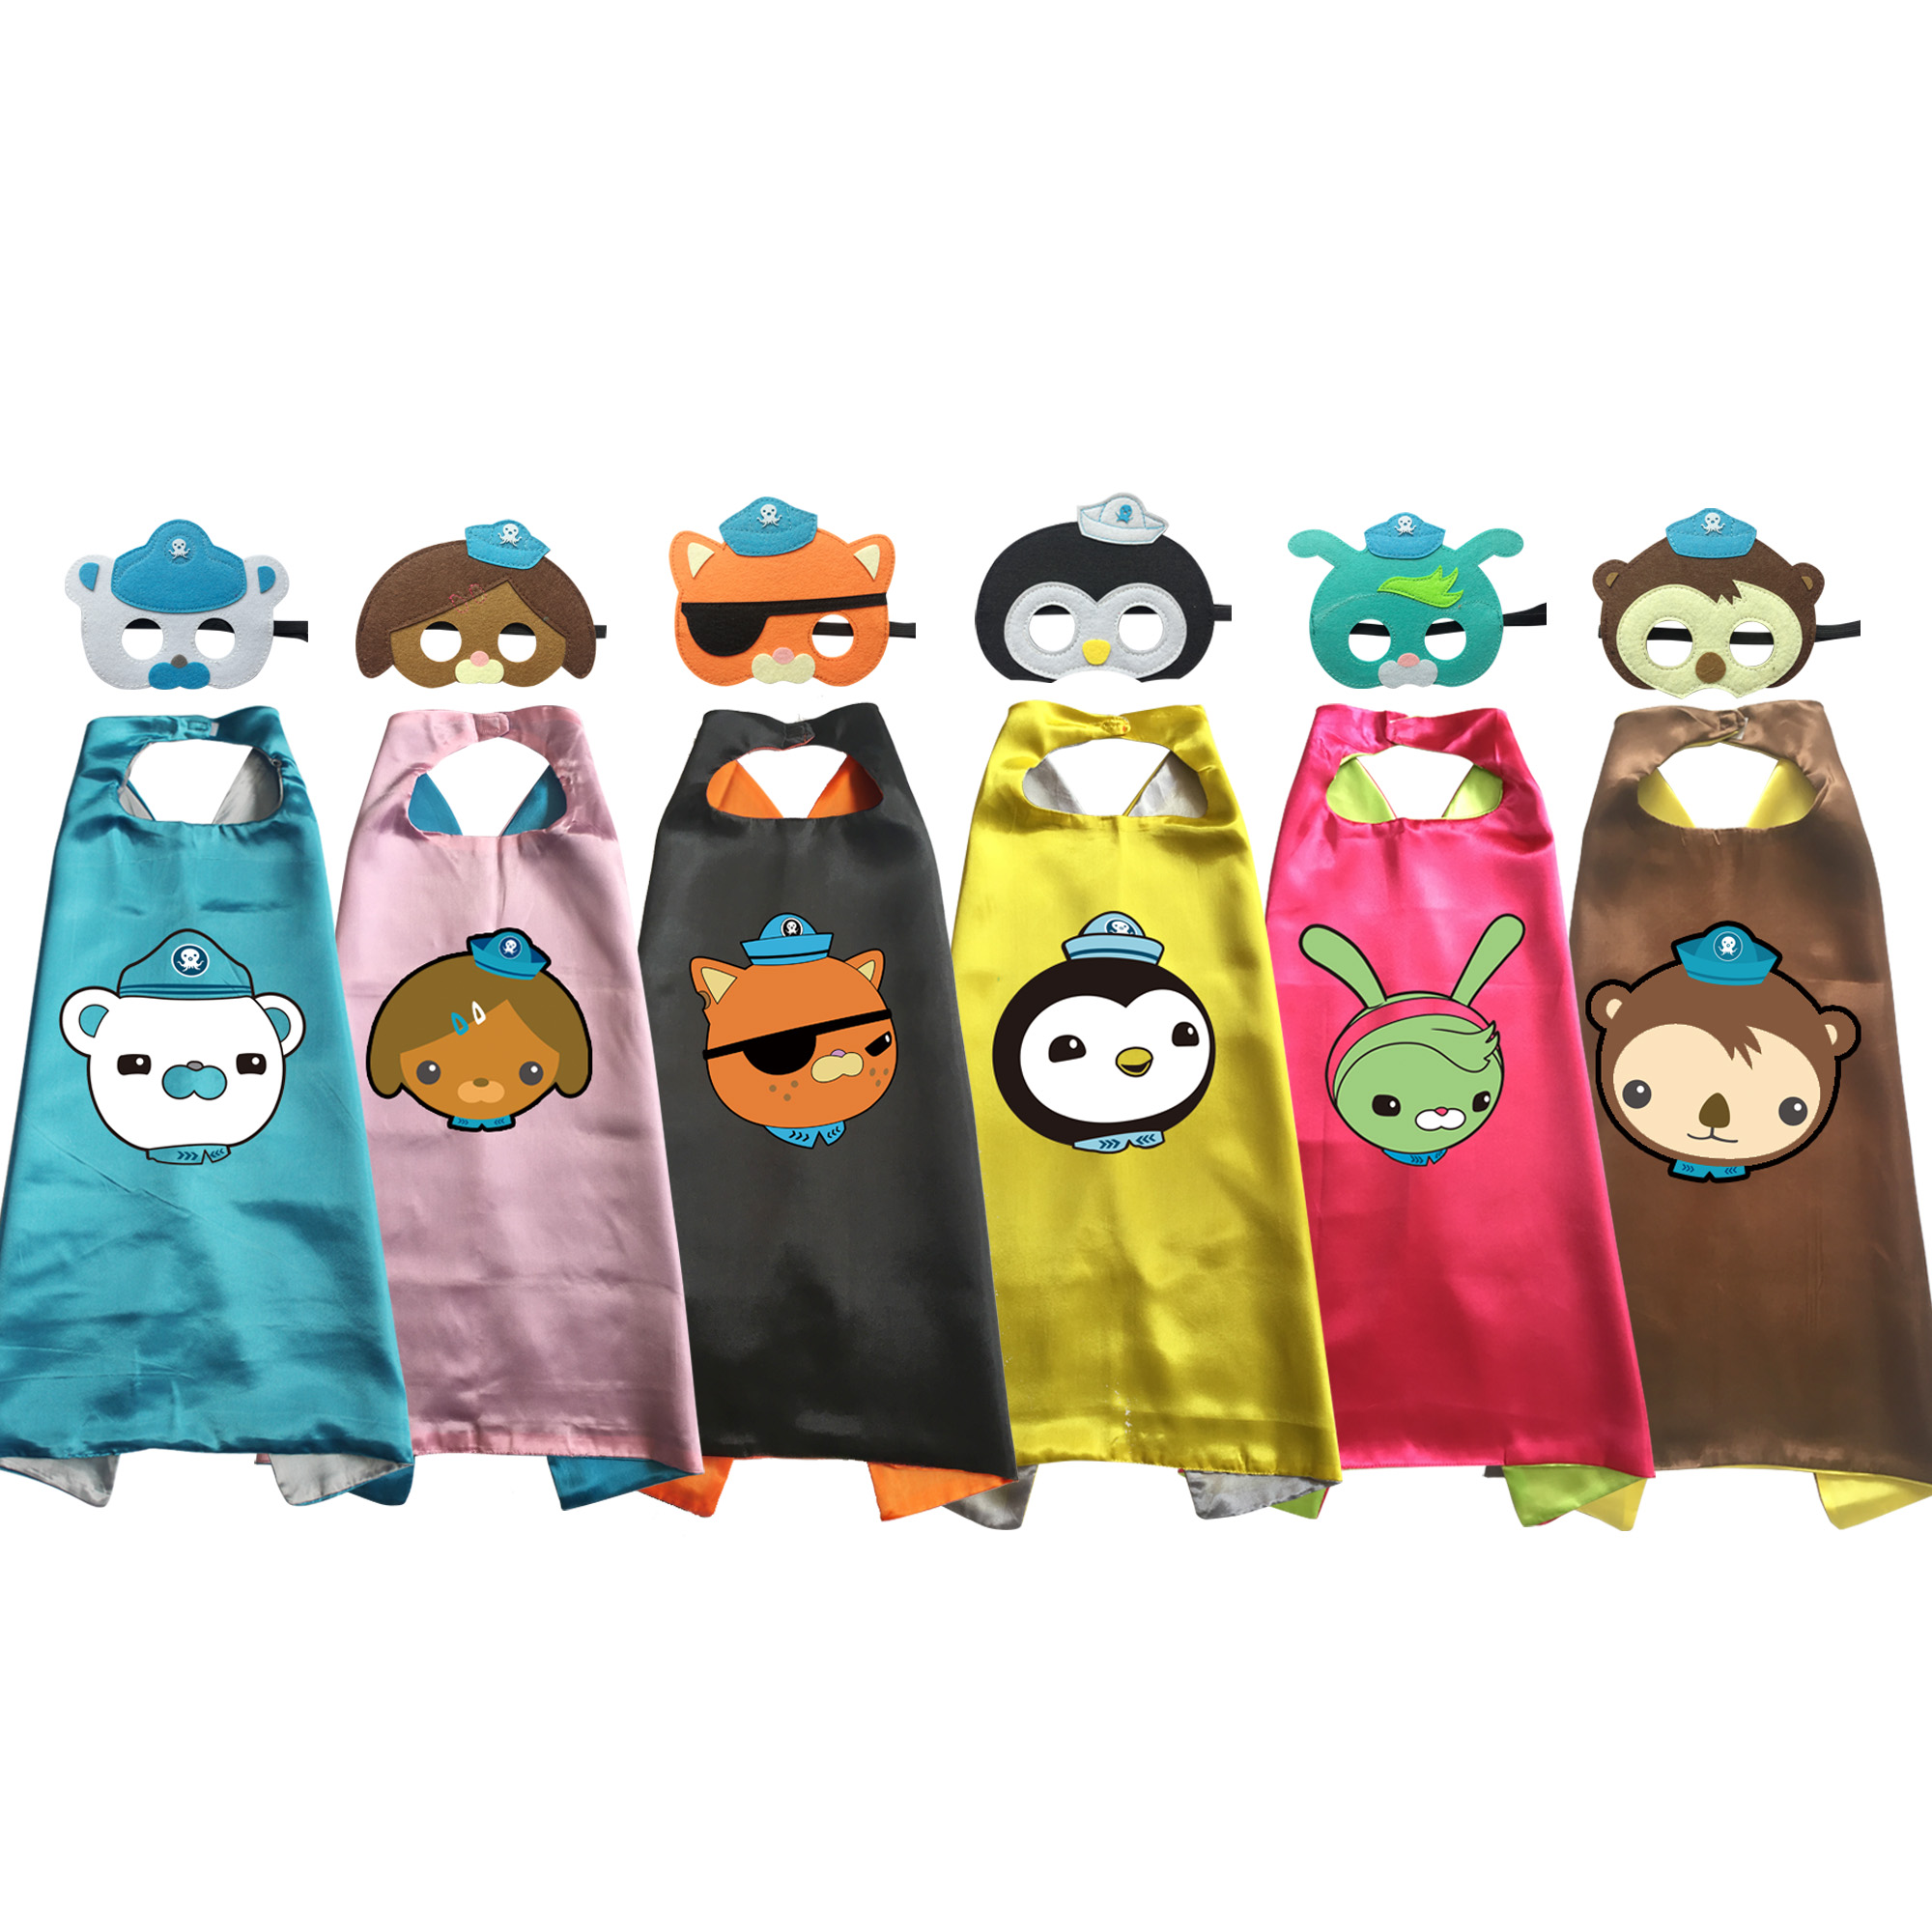 Octonauts Costumes Cape with Mask for Kids Birthday Party Favor Kwazii Barnacles Dashi Peso Cosplay